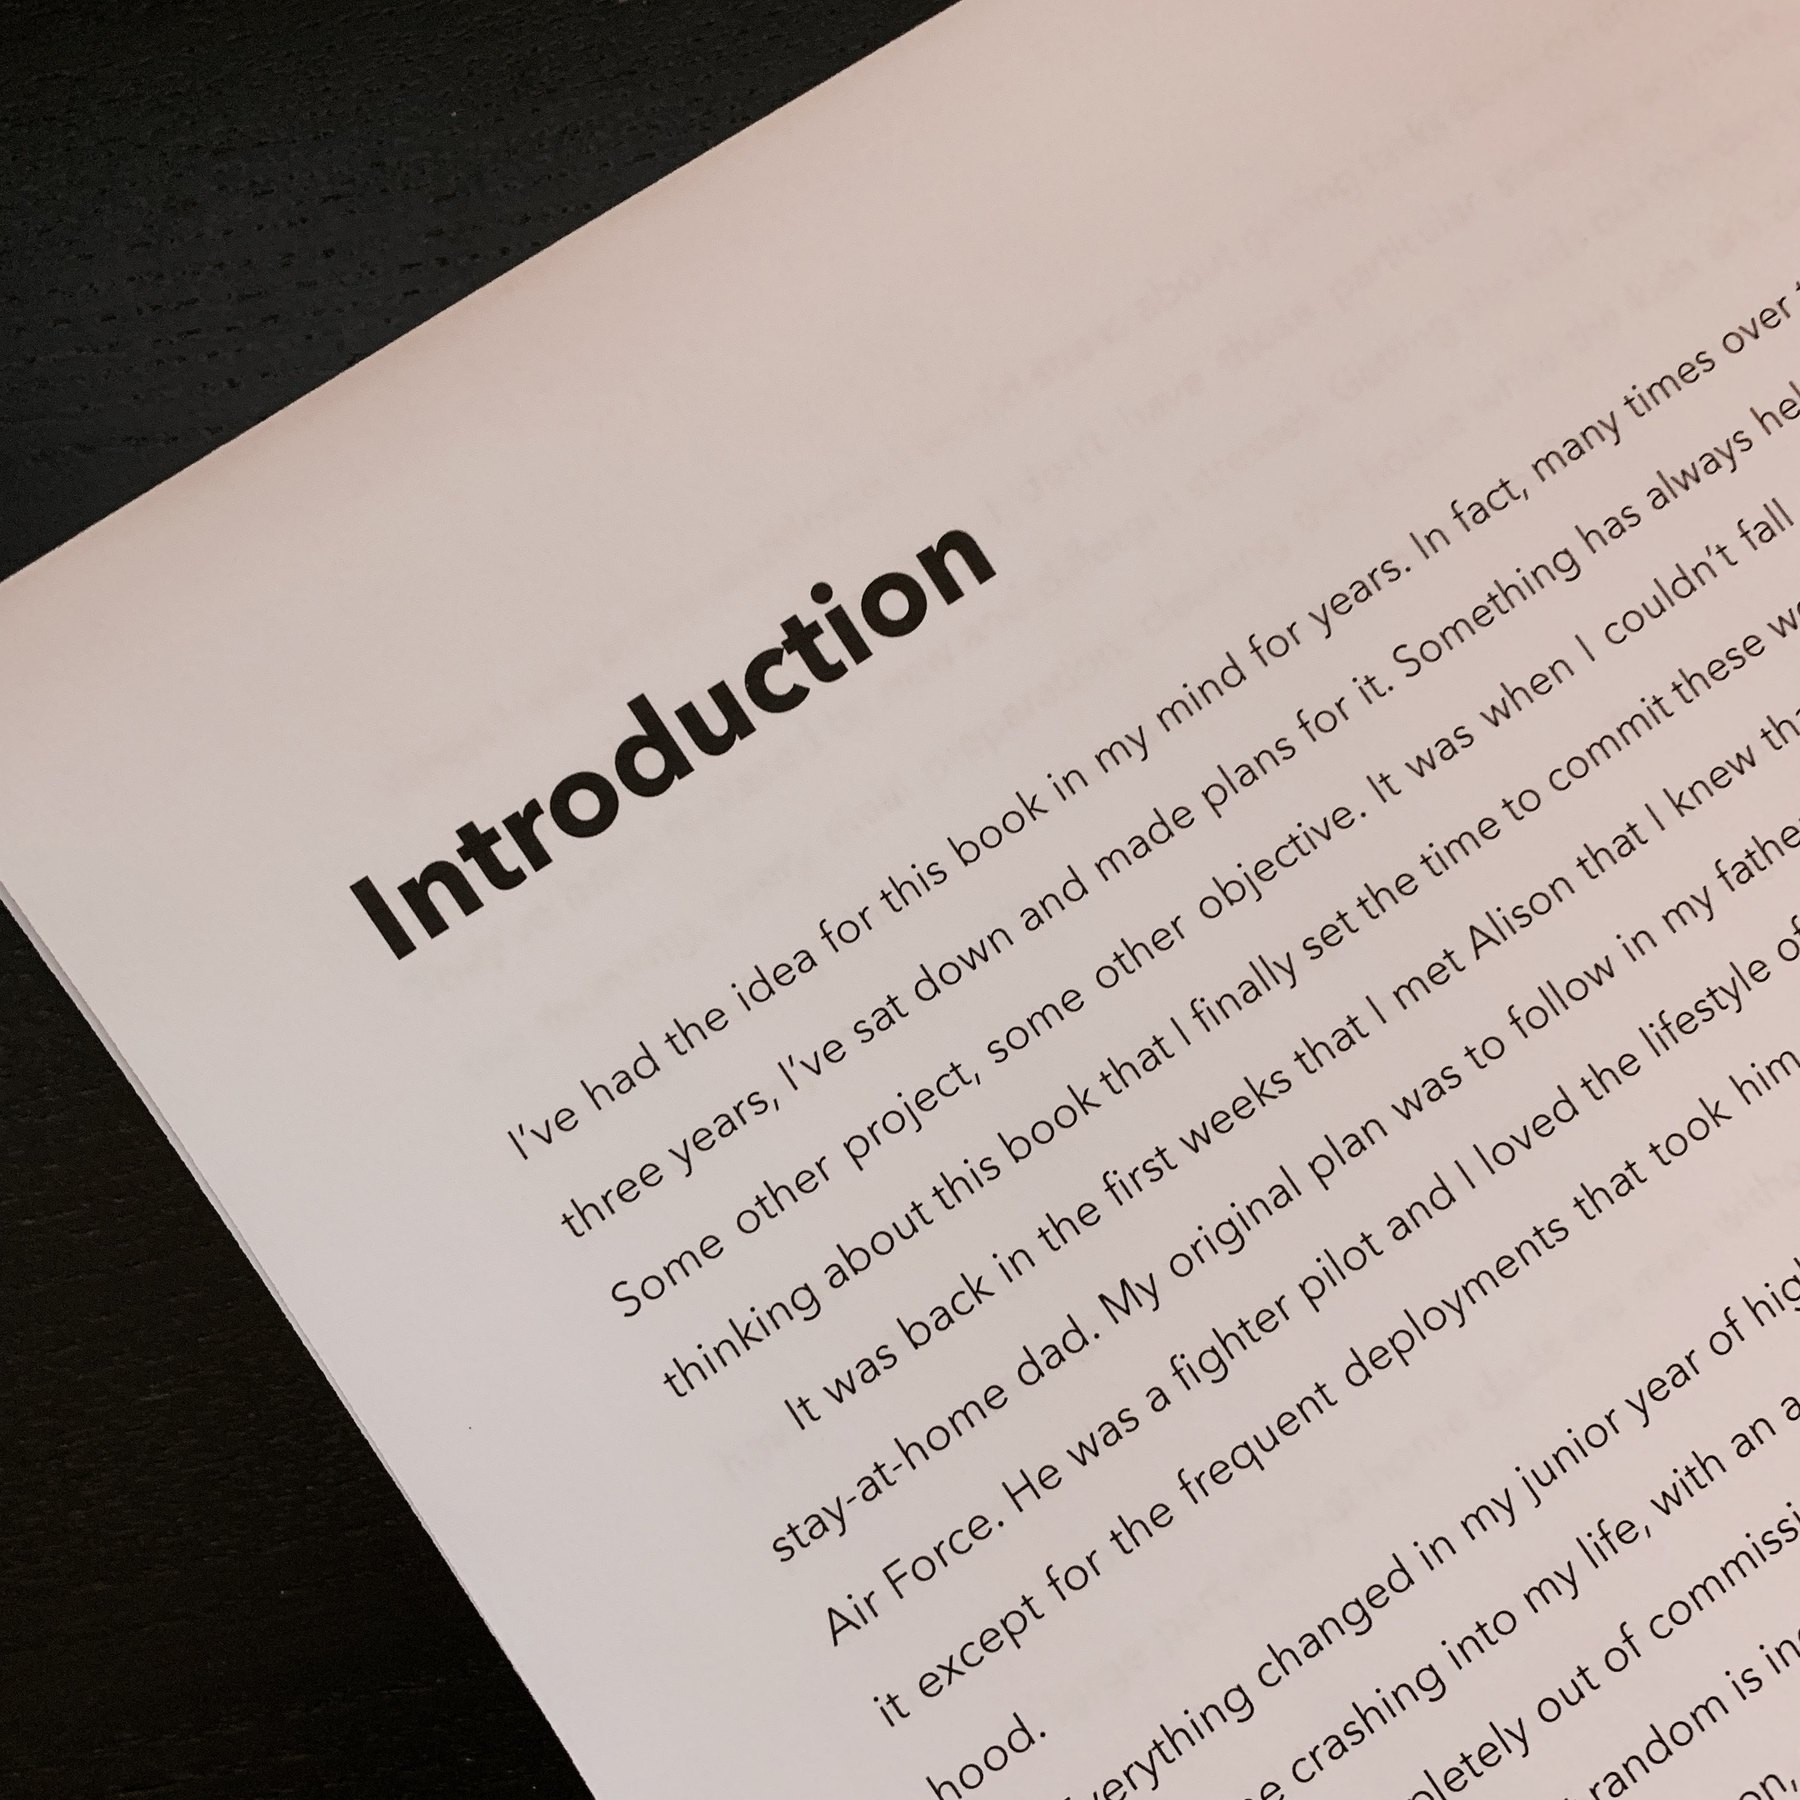 Printout of the first chapter of a new book